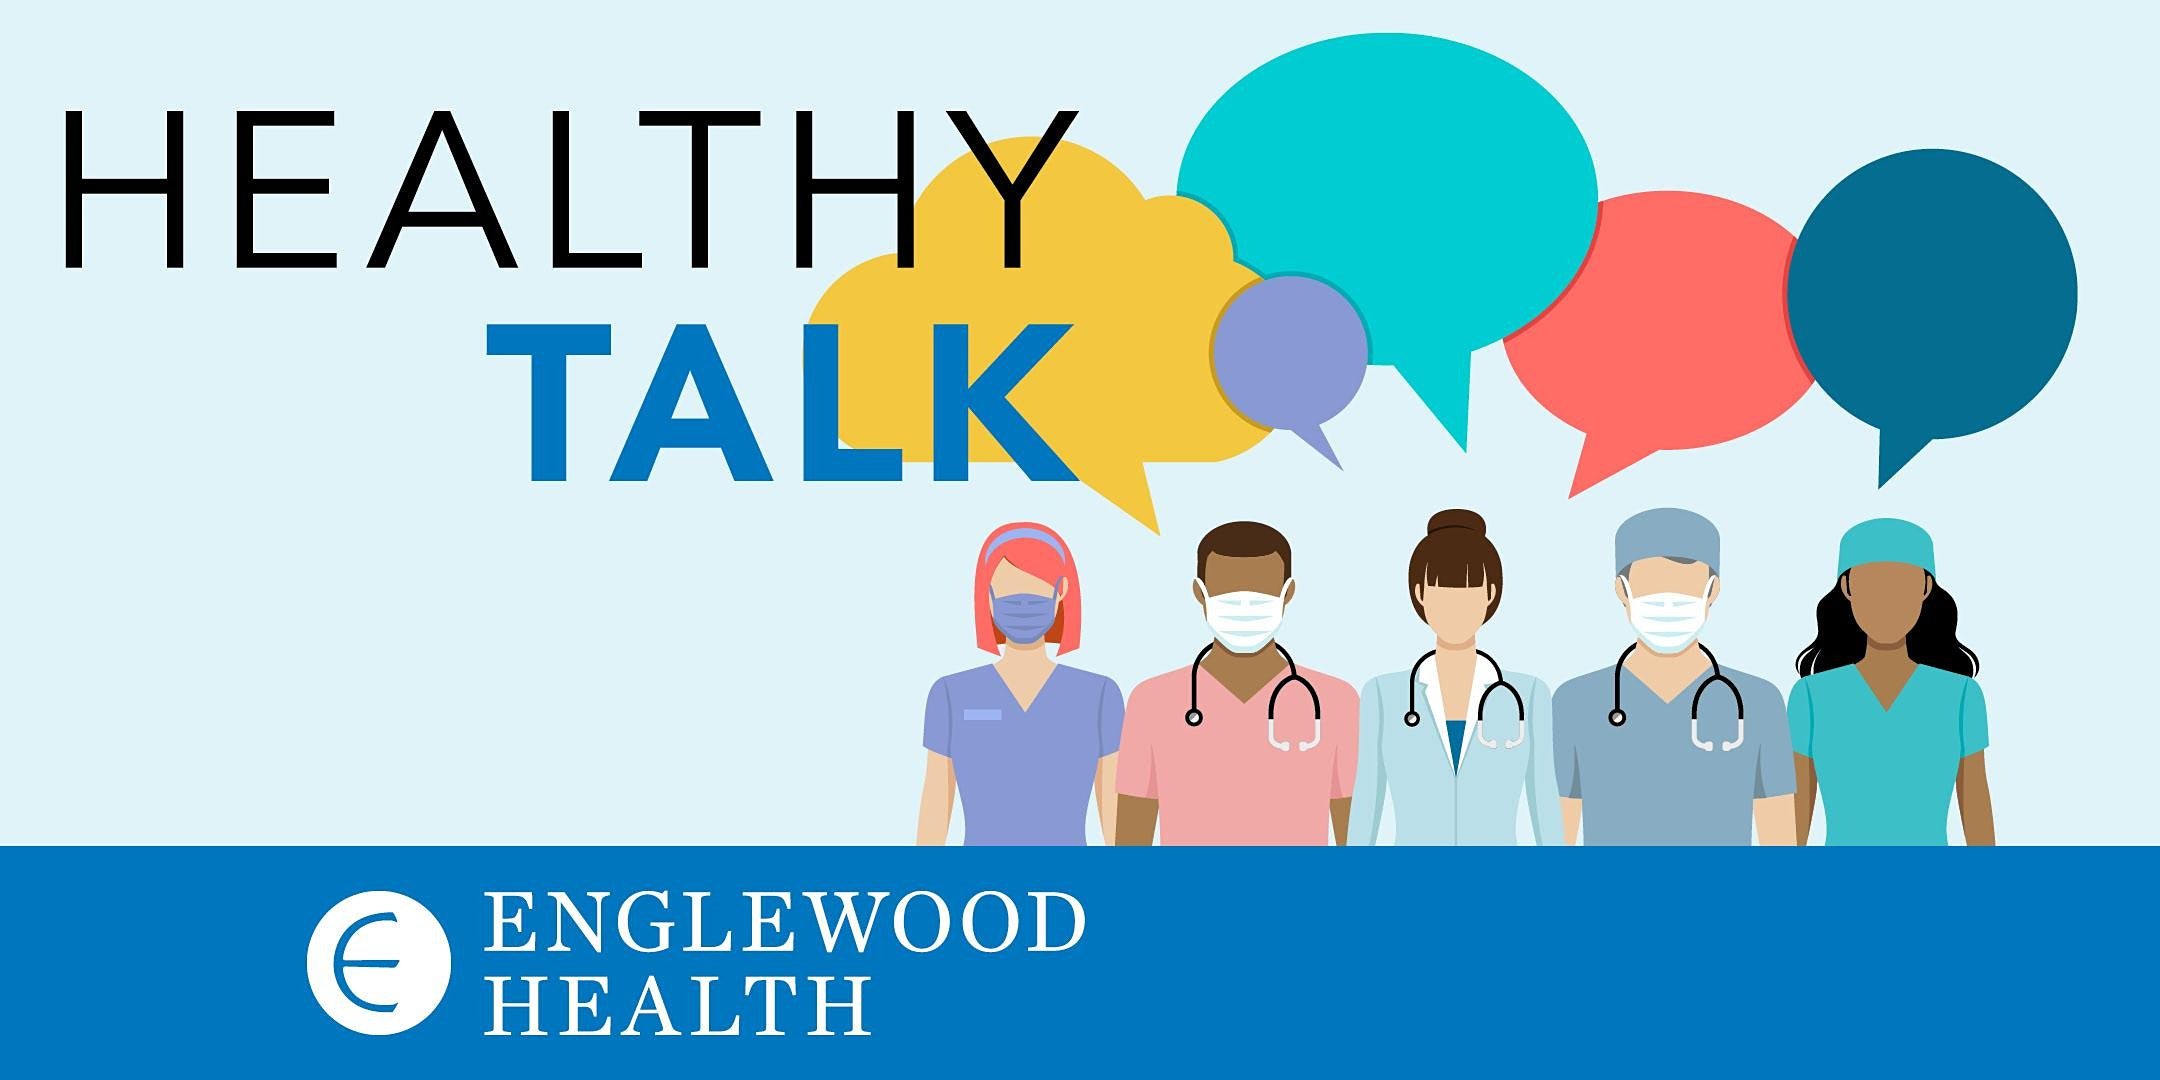 More info: Healthy Talk – COVID-19, the Flu, and Your Family's Health and Safety